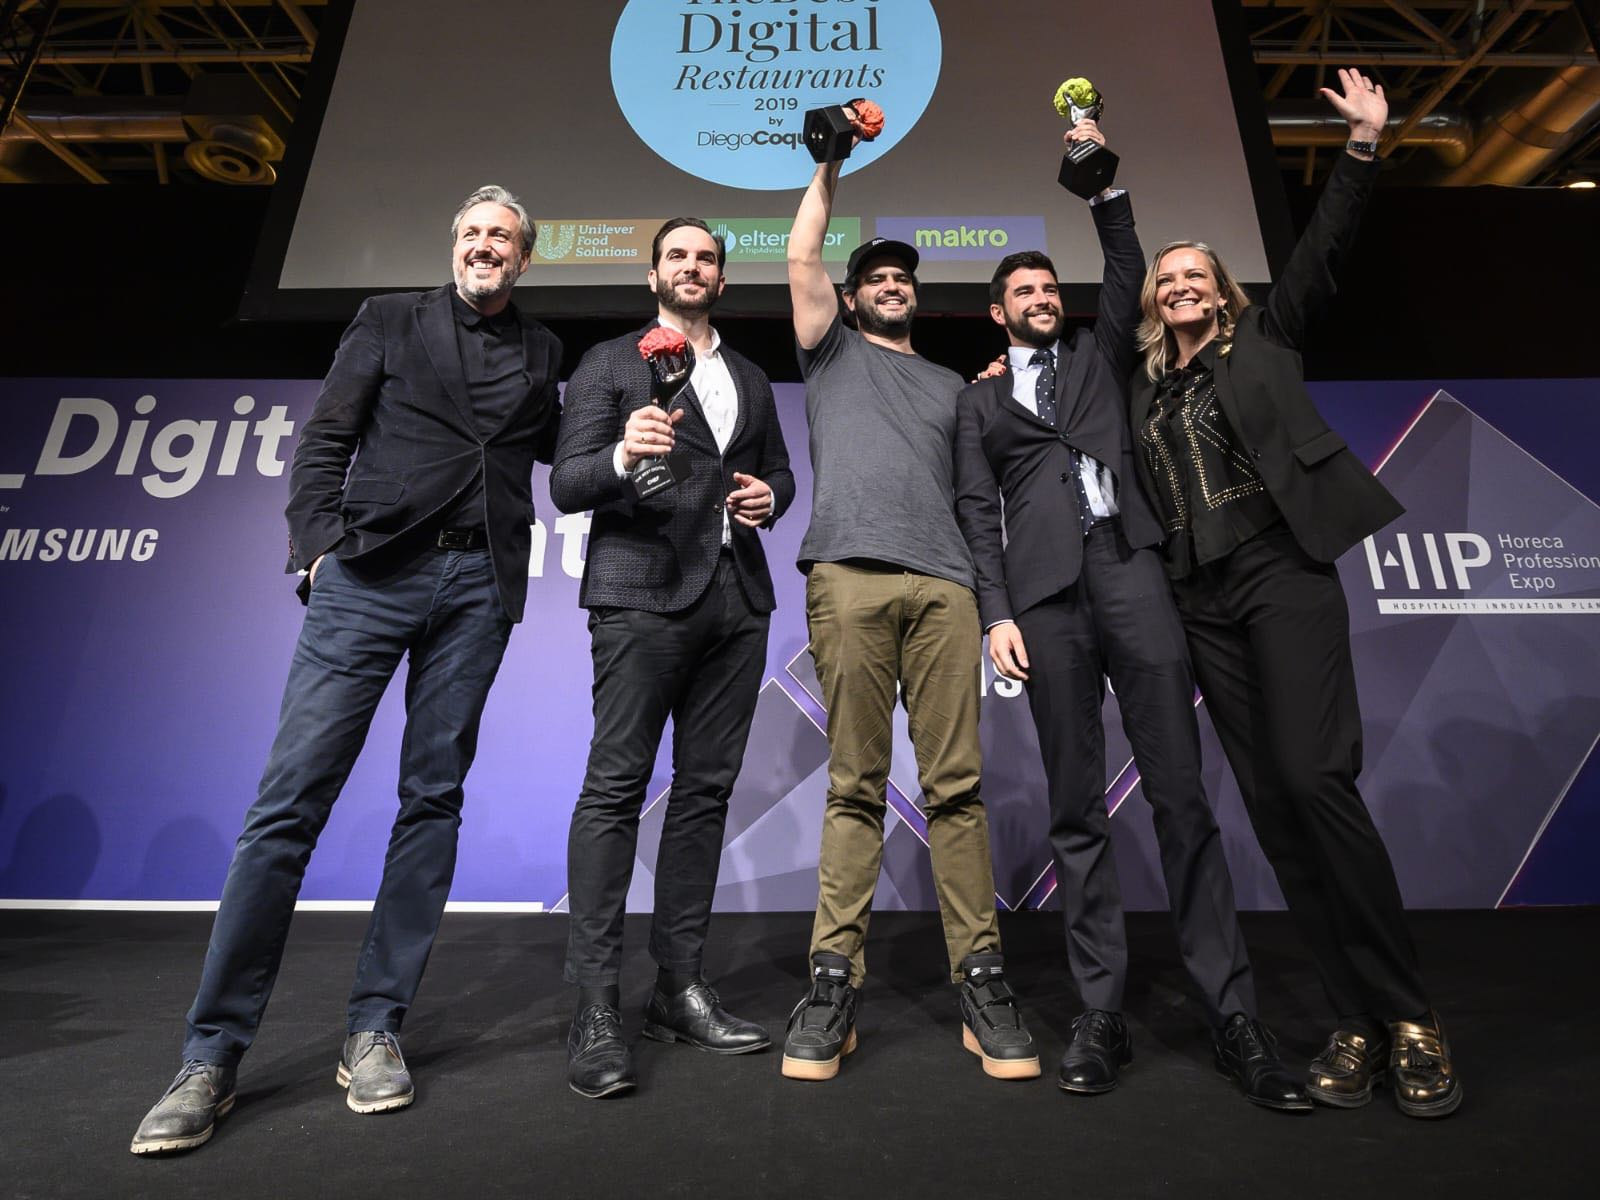 Mario Sandoval, premiado en The Best Digital Restaurants 2019